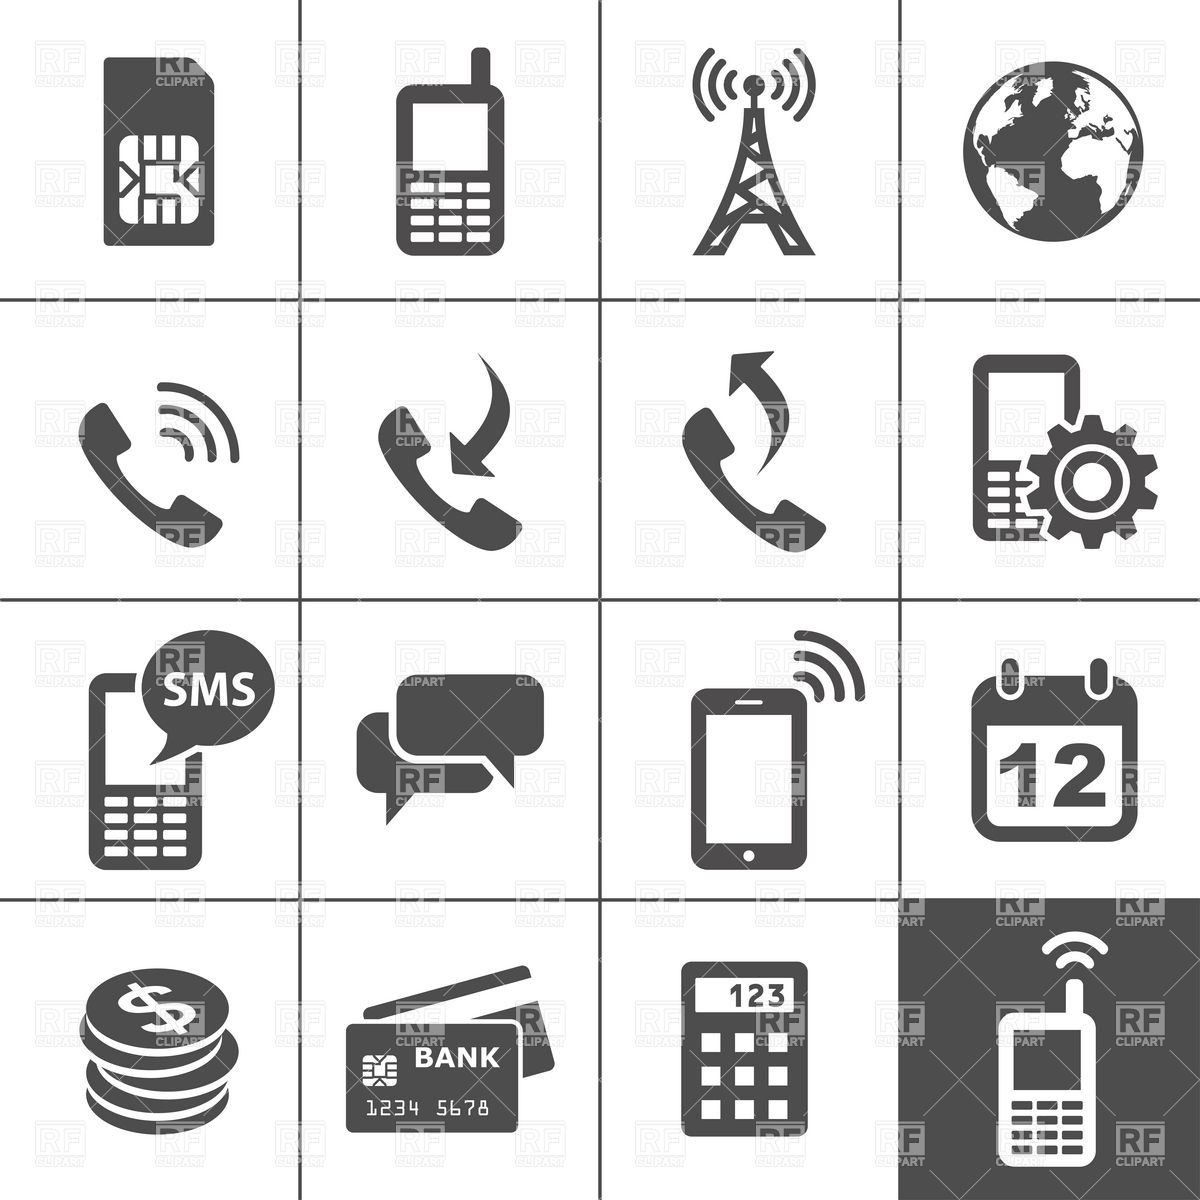 1200x1200 Mobile Account Management And Services Icons Vector Image Vector